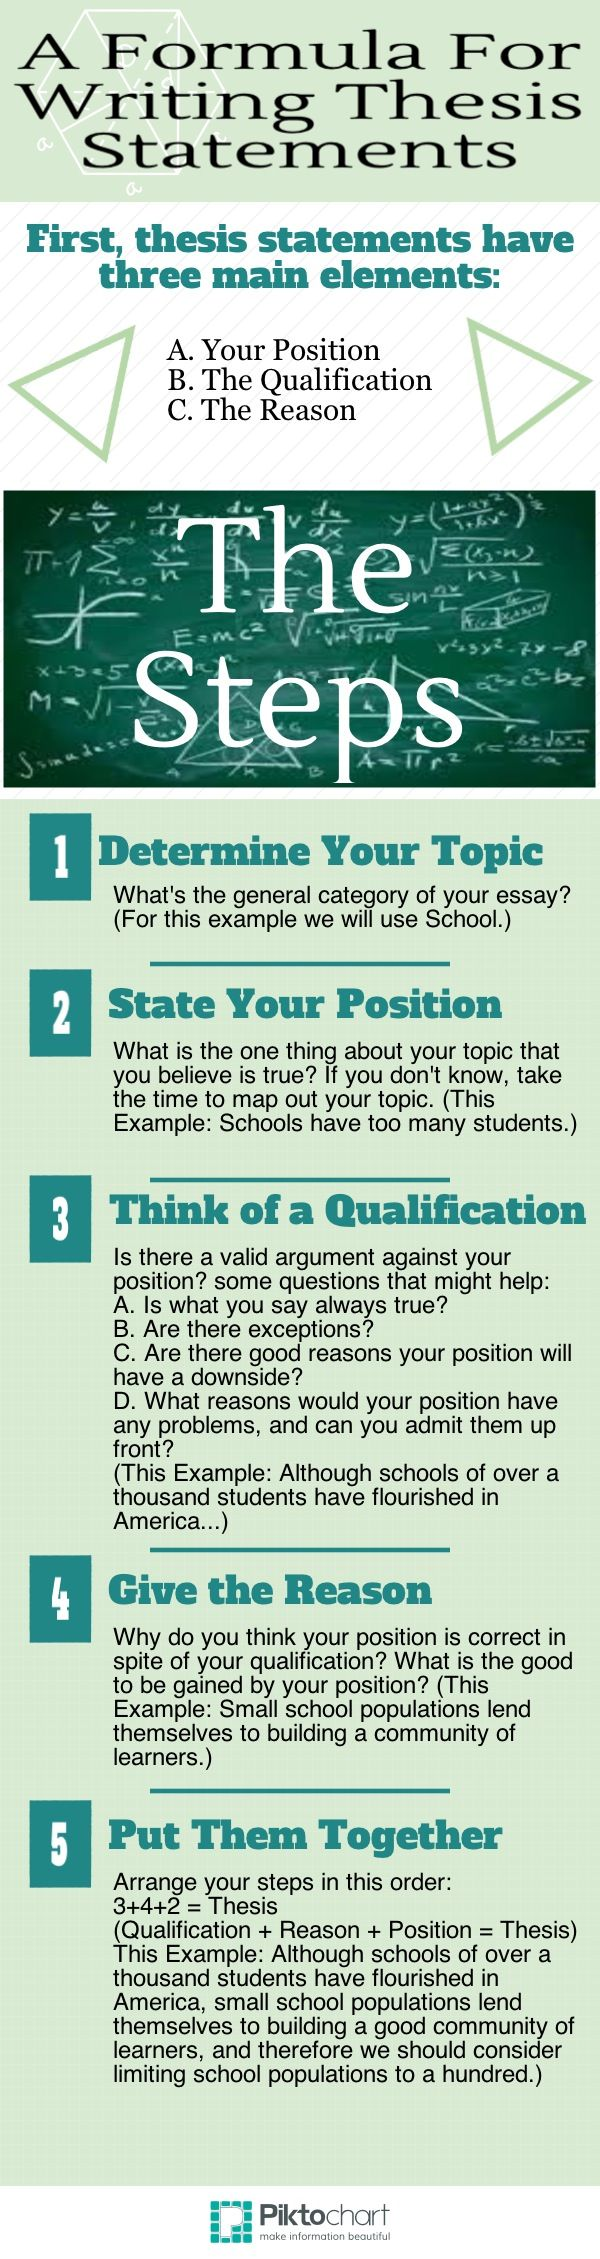 thesis statements piktochart infographic education to get